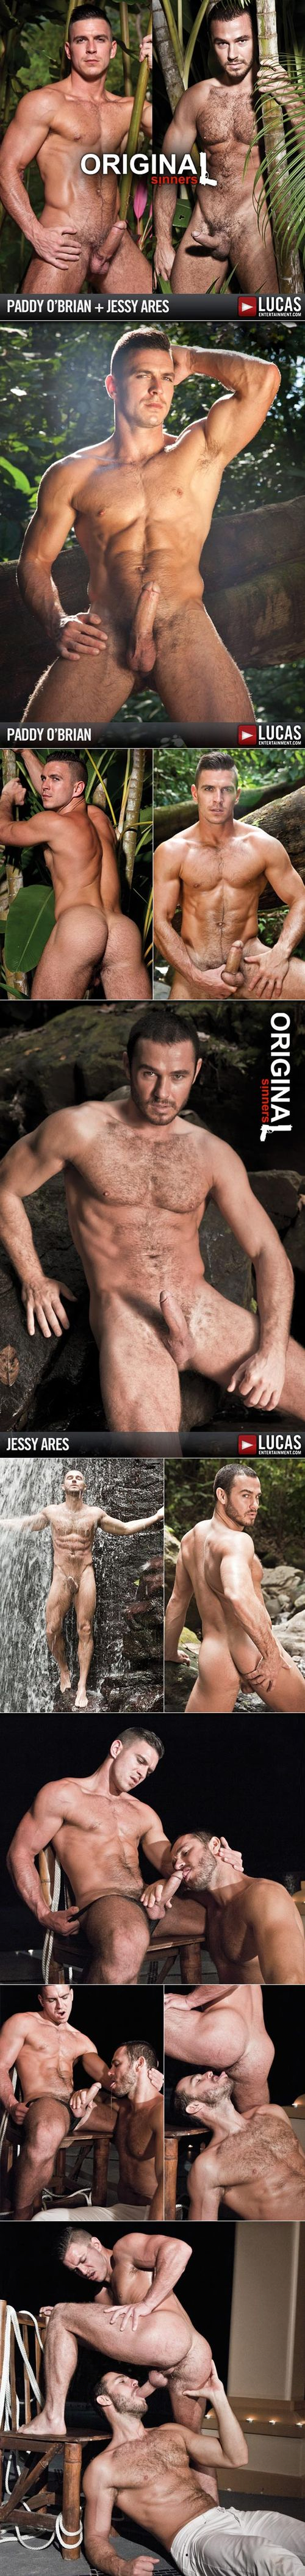 Paddy-obrian-jessy-ares-lucasentertainment-1